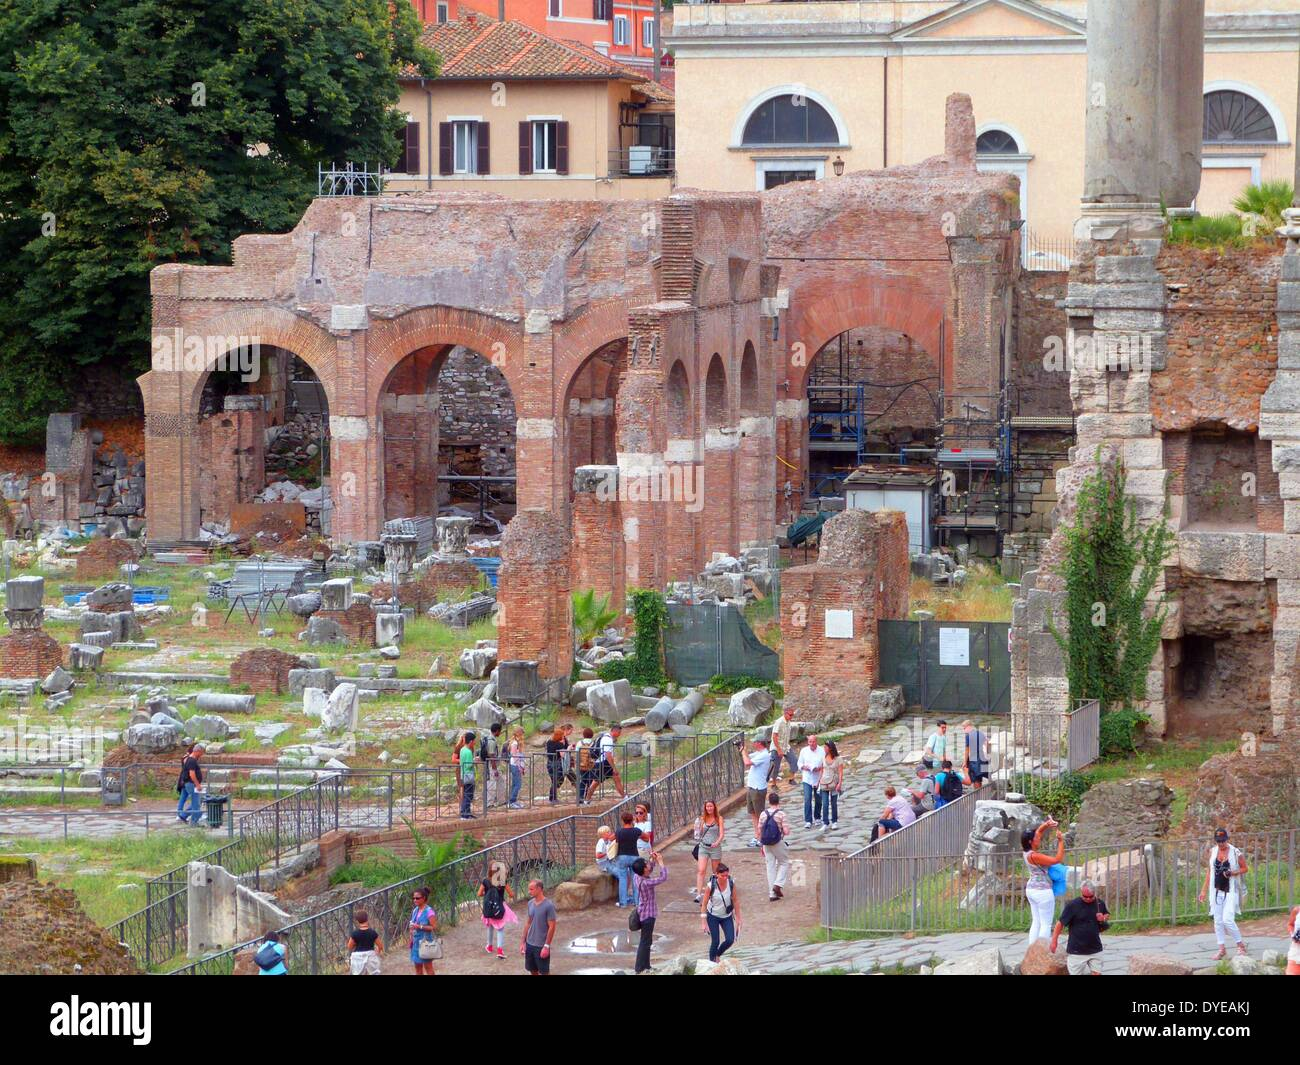 The Roman Forum is a rectangular plaza surrounded by the ruins of ancient government building in the centre of Rome. Rome - Stock Image